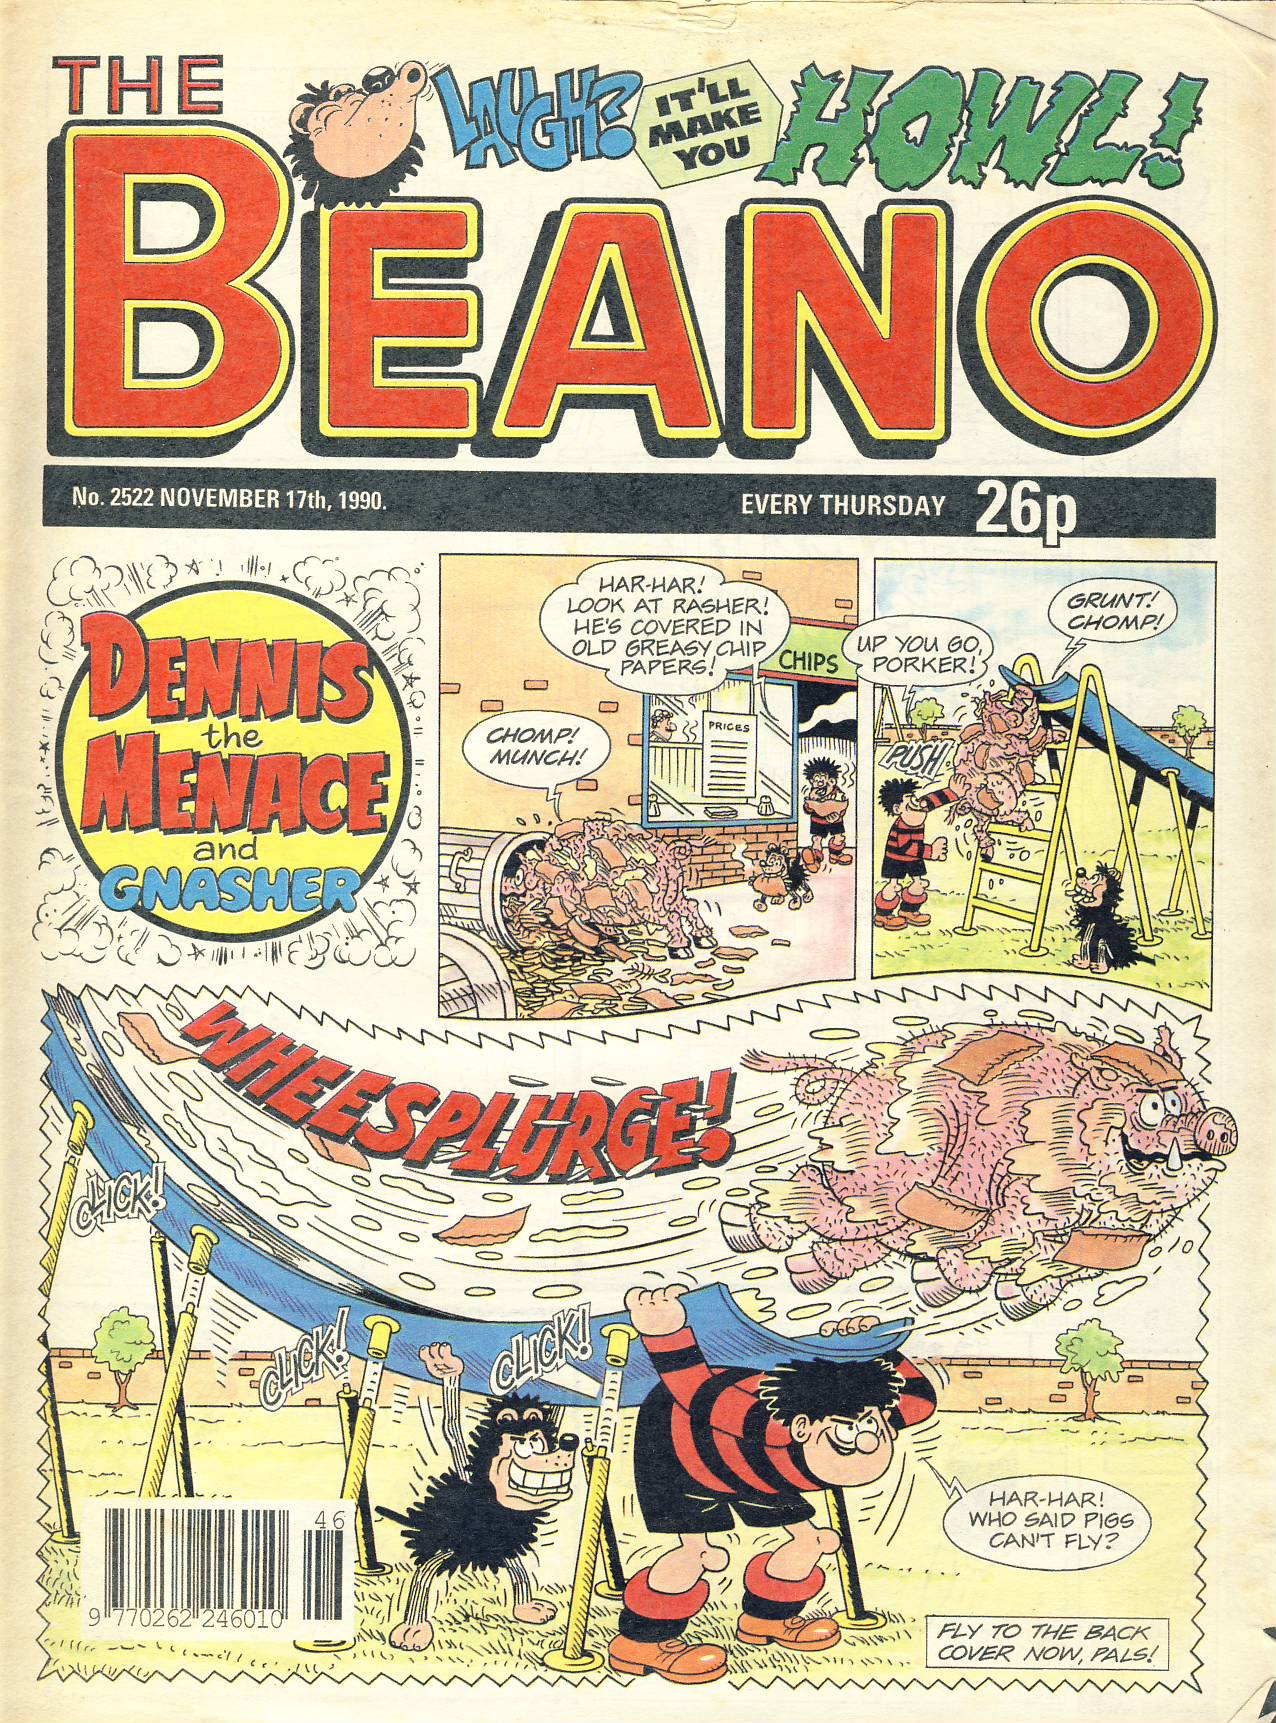 1990 November 17th BEANO vintage comic Good Gift Christmas Present Birthday Anniversary ref315a pre-owned item in well read condition.